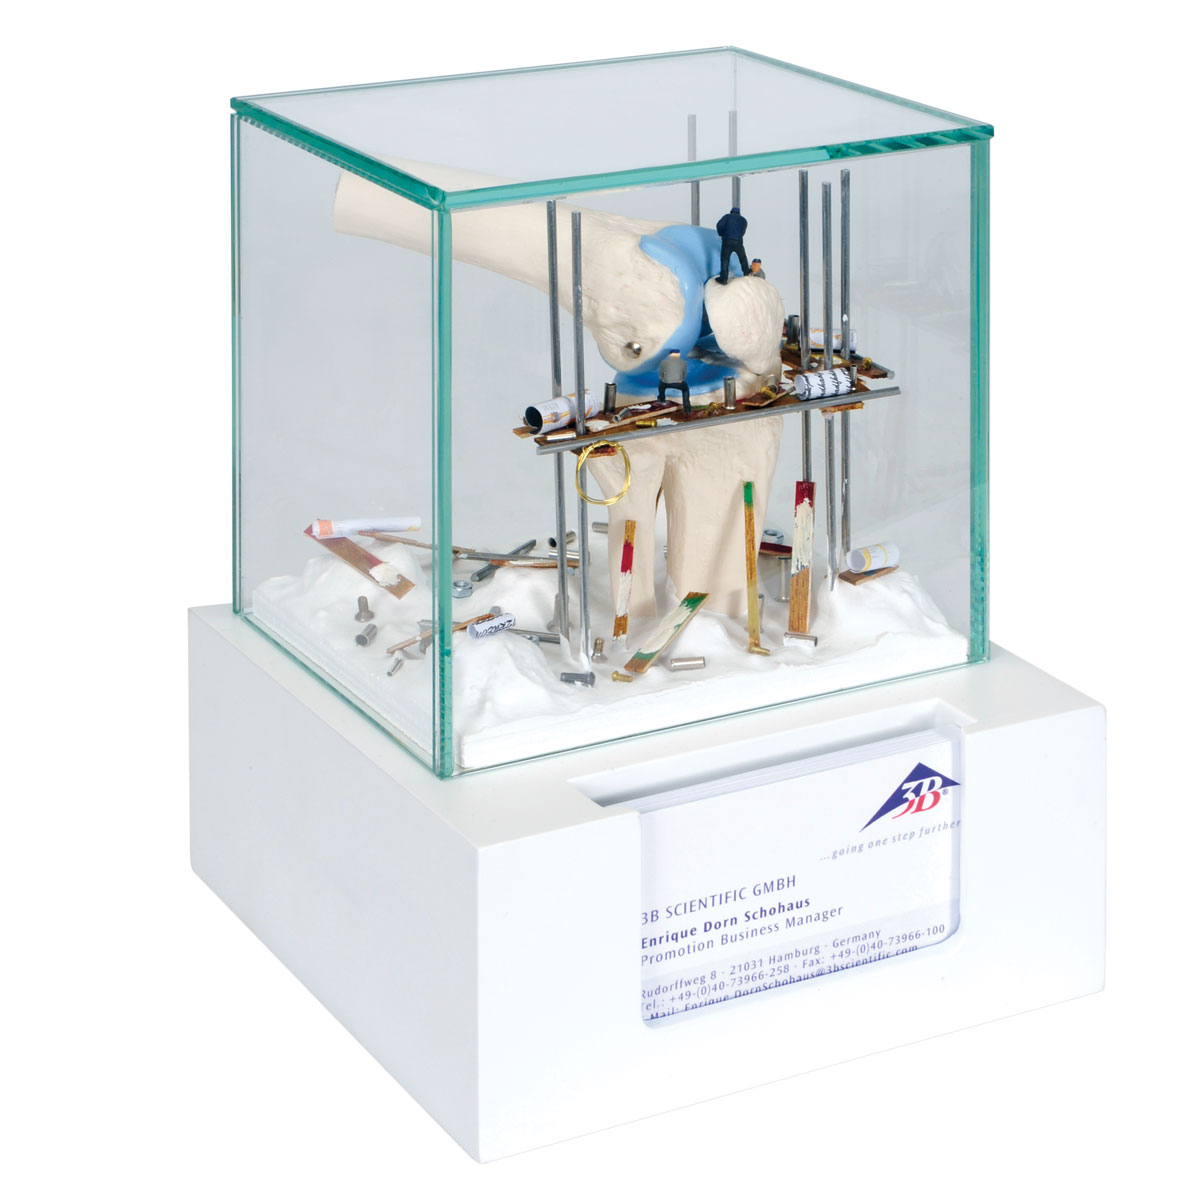 Knee Display Case with Business Card Holder - W23054 - 3B ...